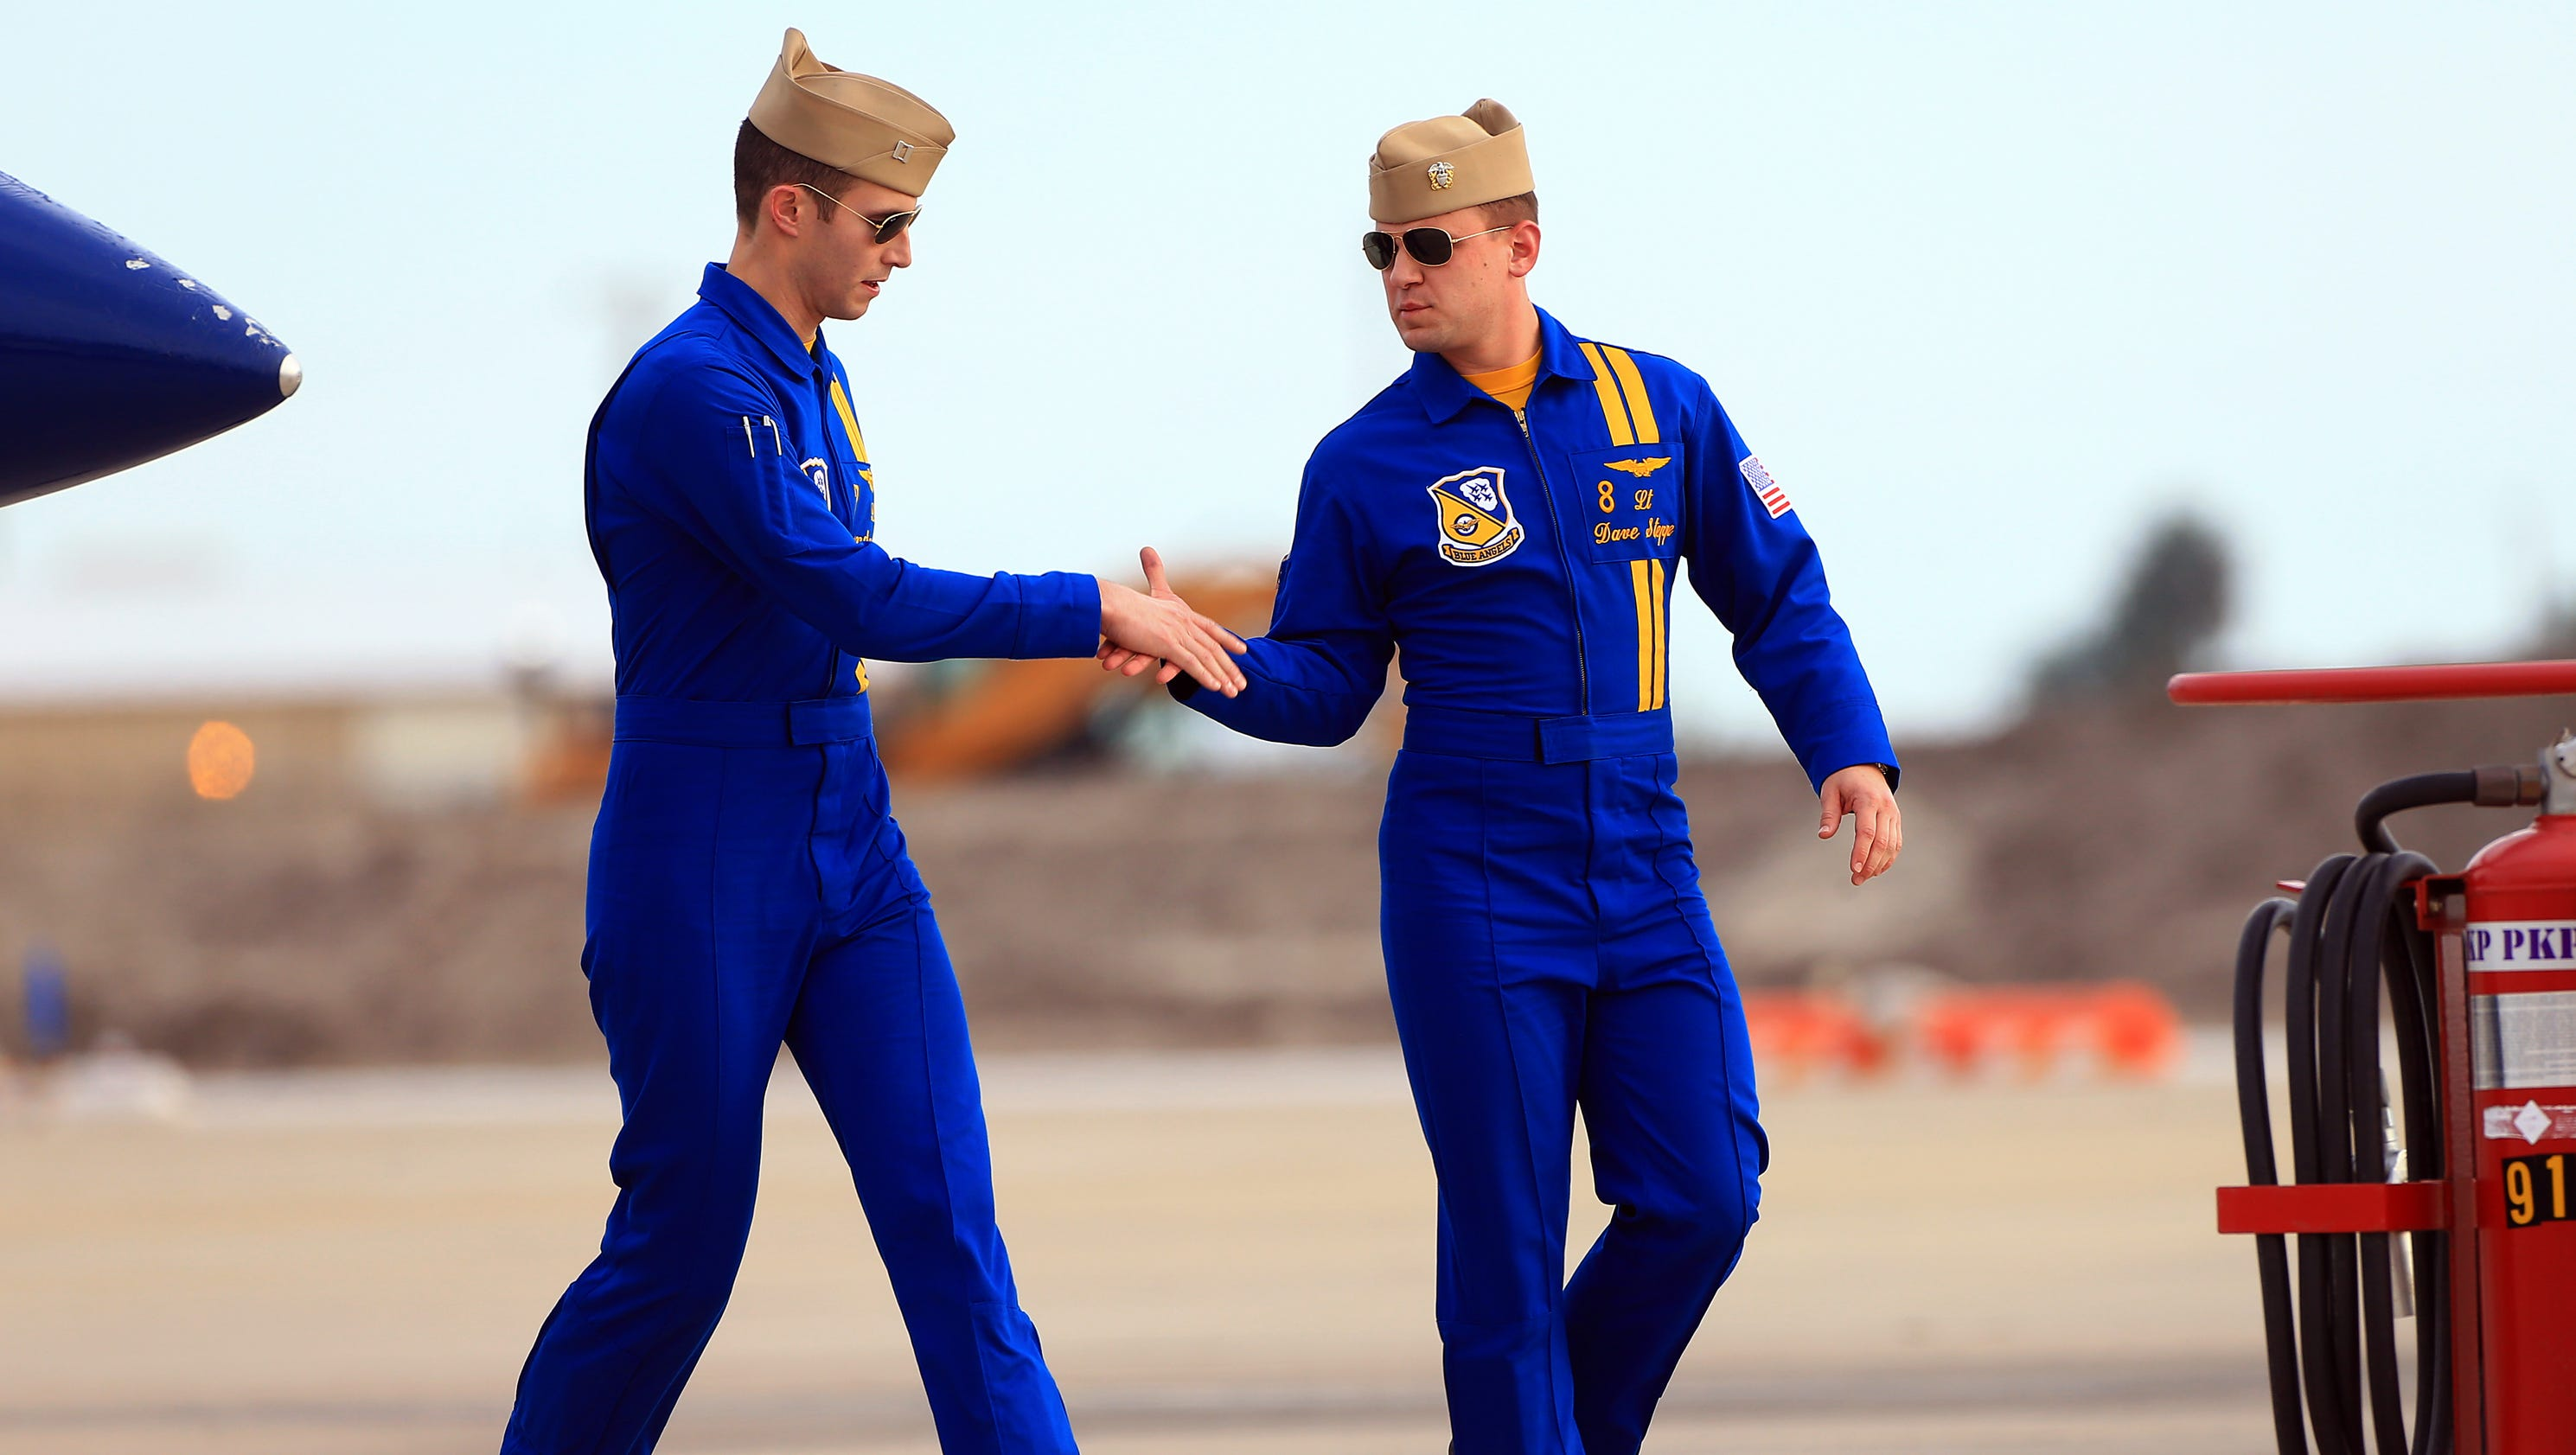 Meet The Blue Angels Before Wings Over South Texas